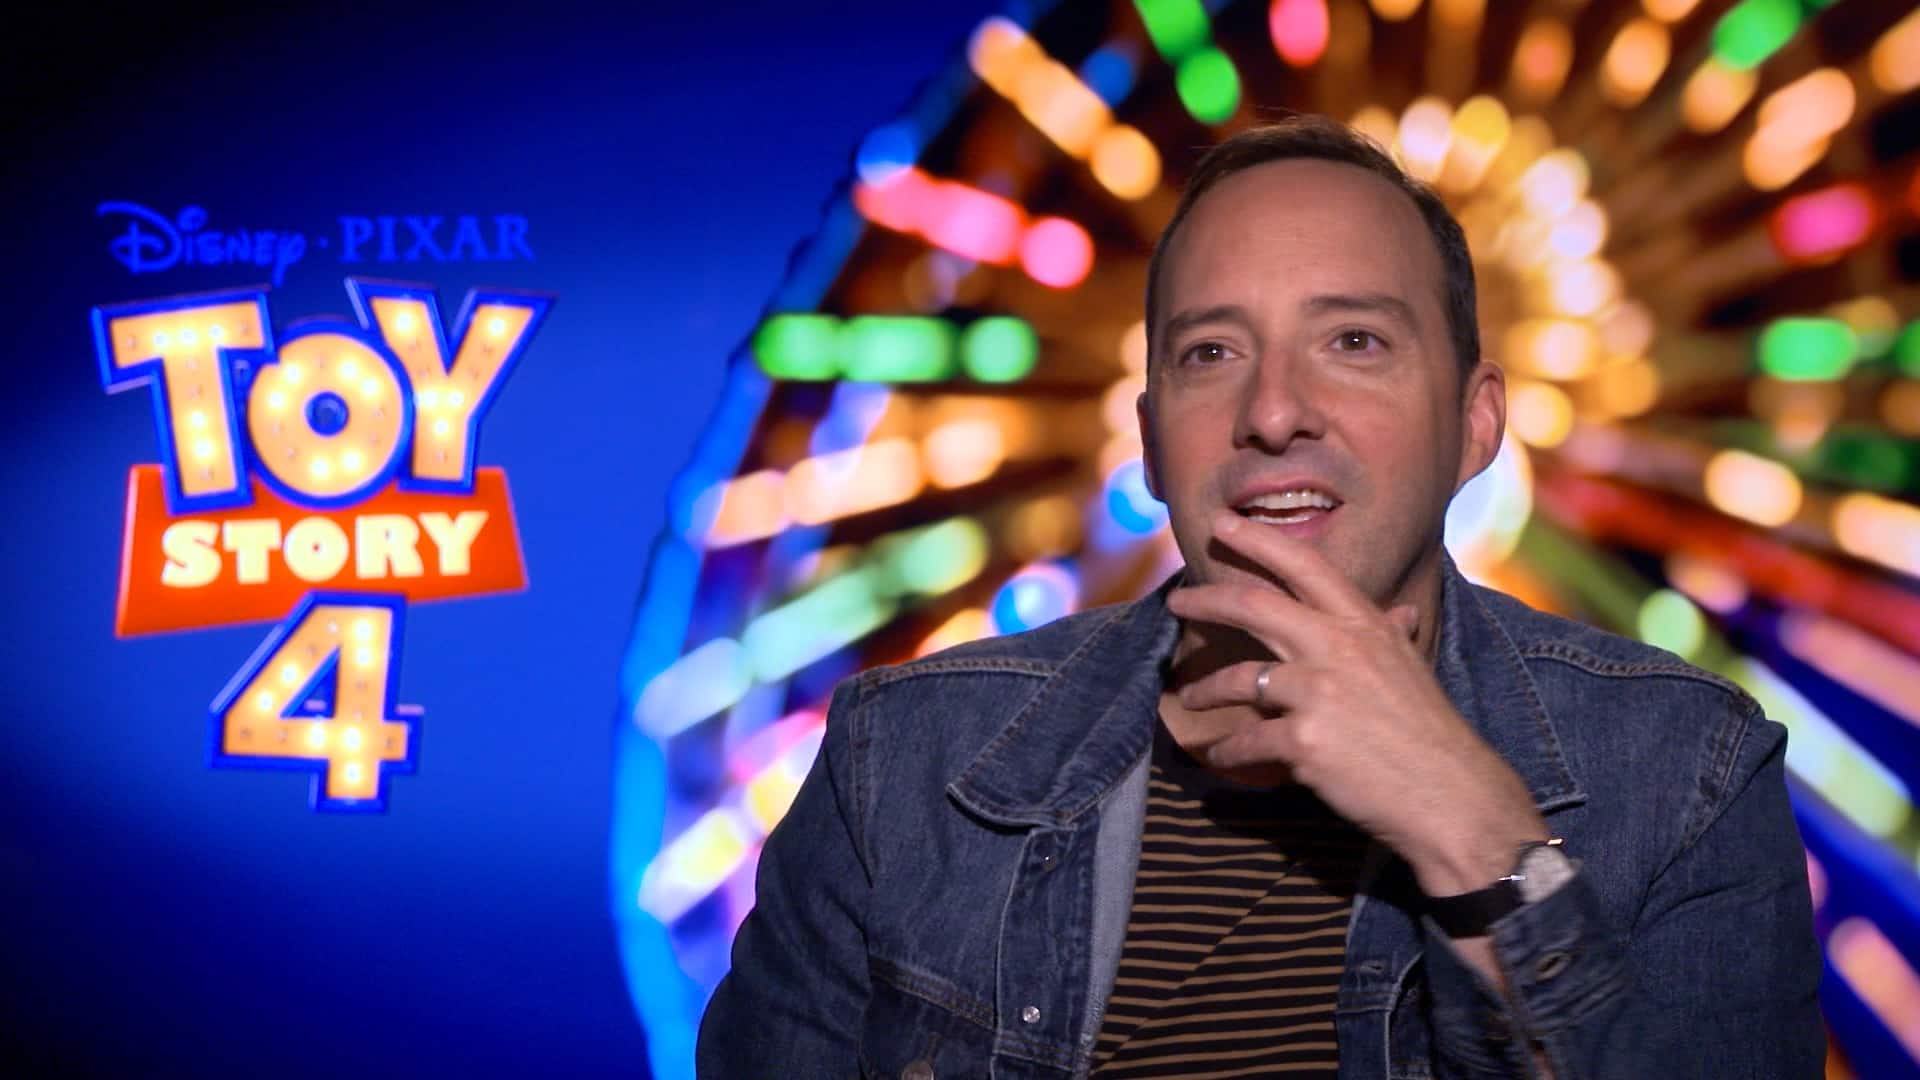 Actor Tony Hale sits in front of a promotional poster for Toy Story 4 Actor Tony Hale sits in front of a promotional poster for Toy Story 4